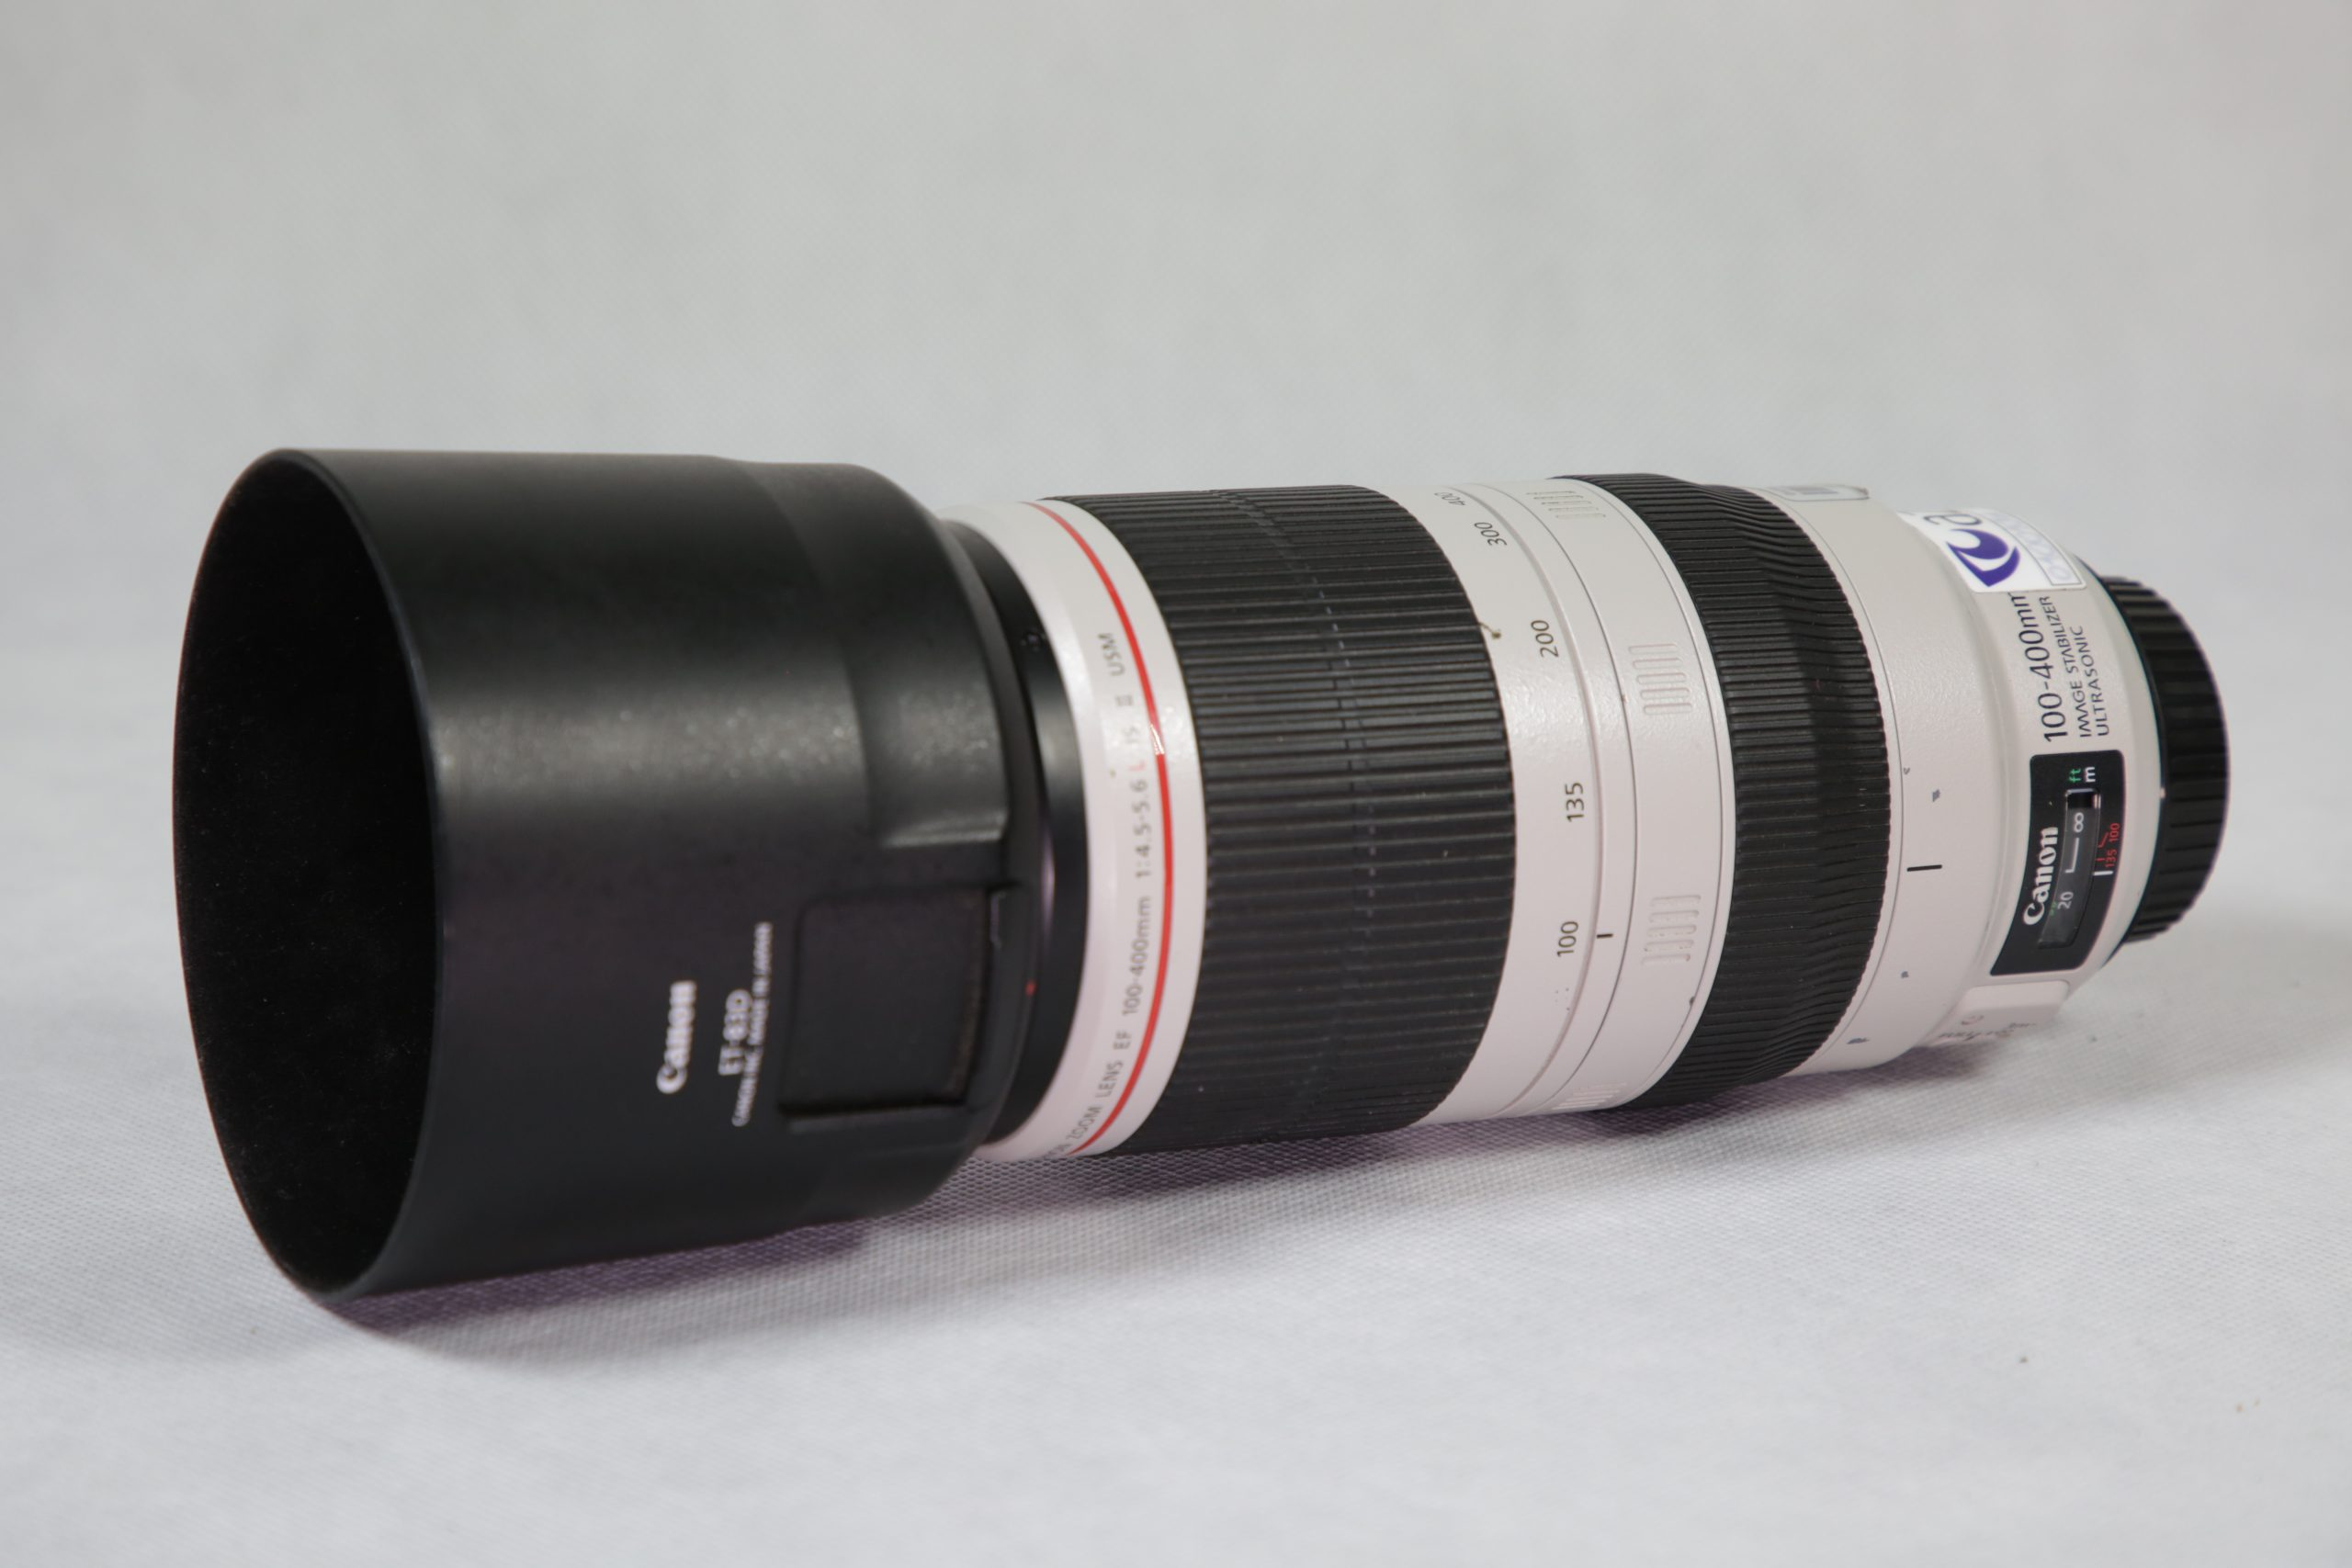 Canon 100-400mm f4.5-5.6 L IS II USM